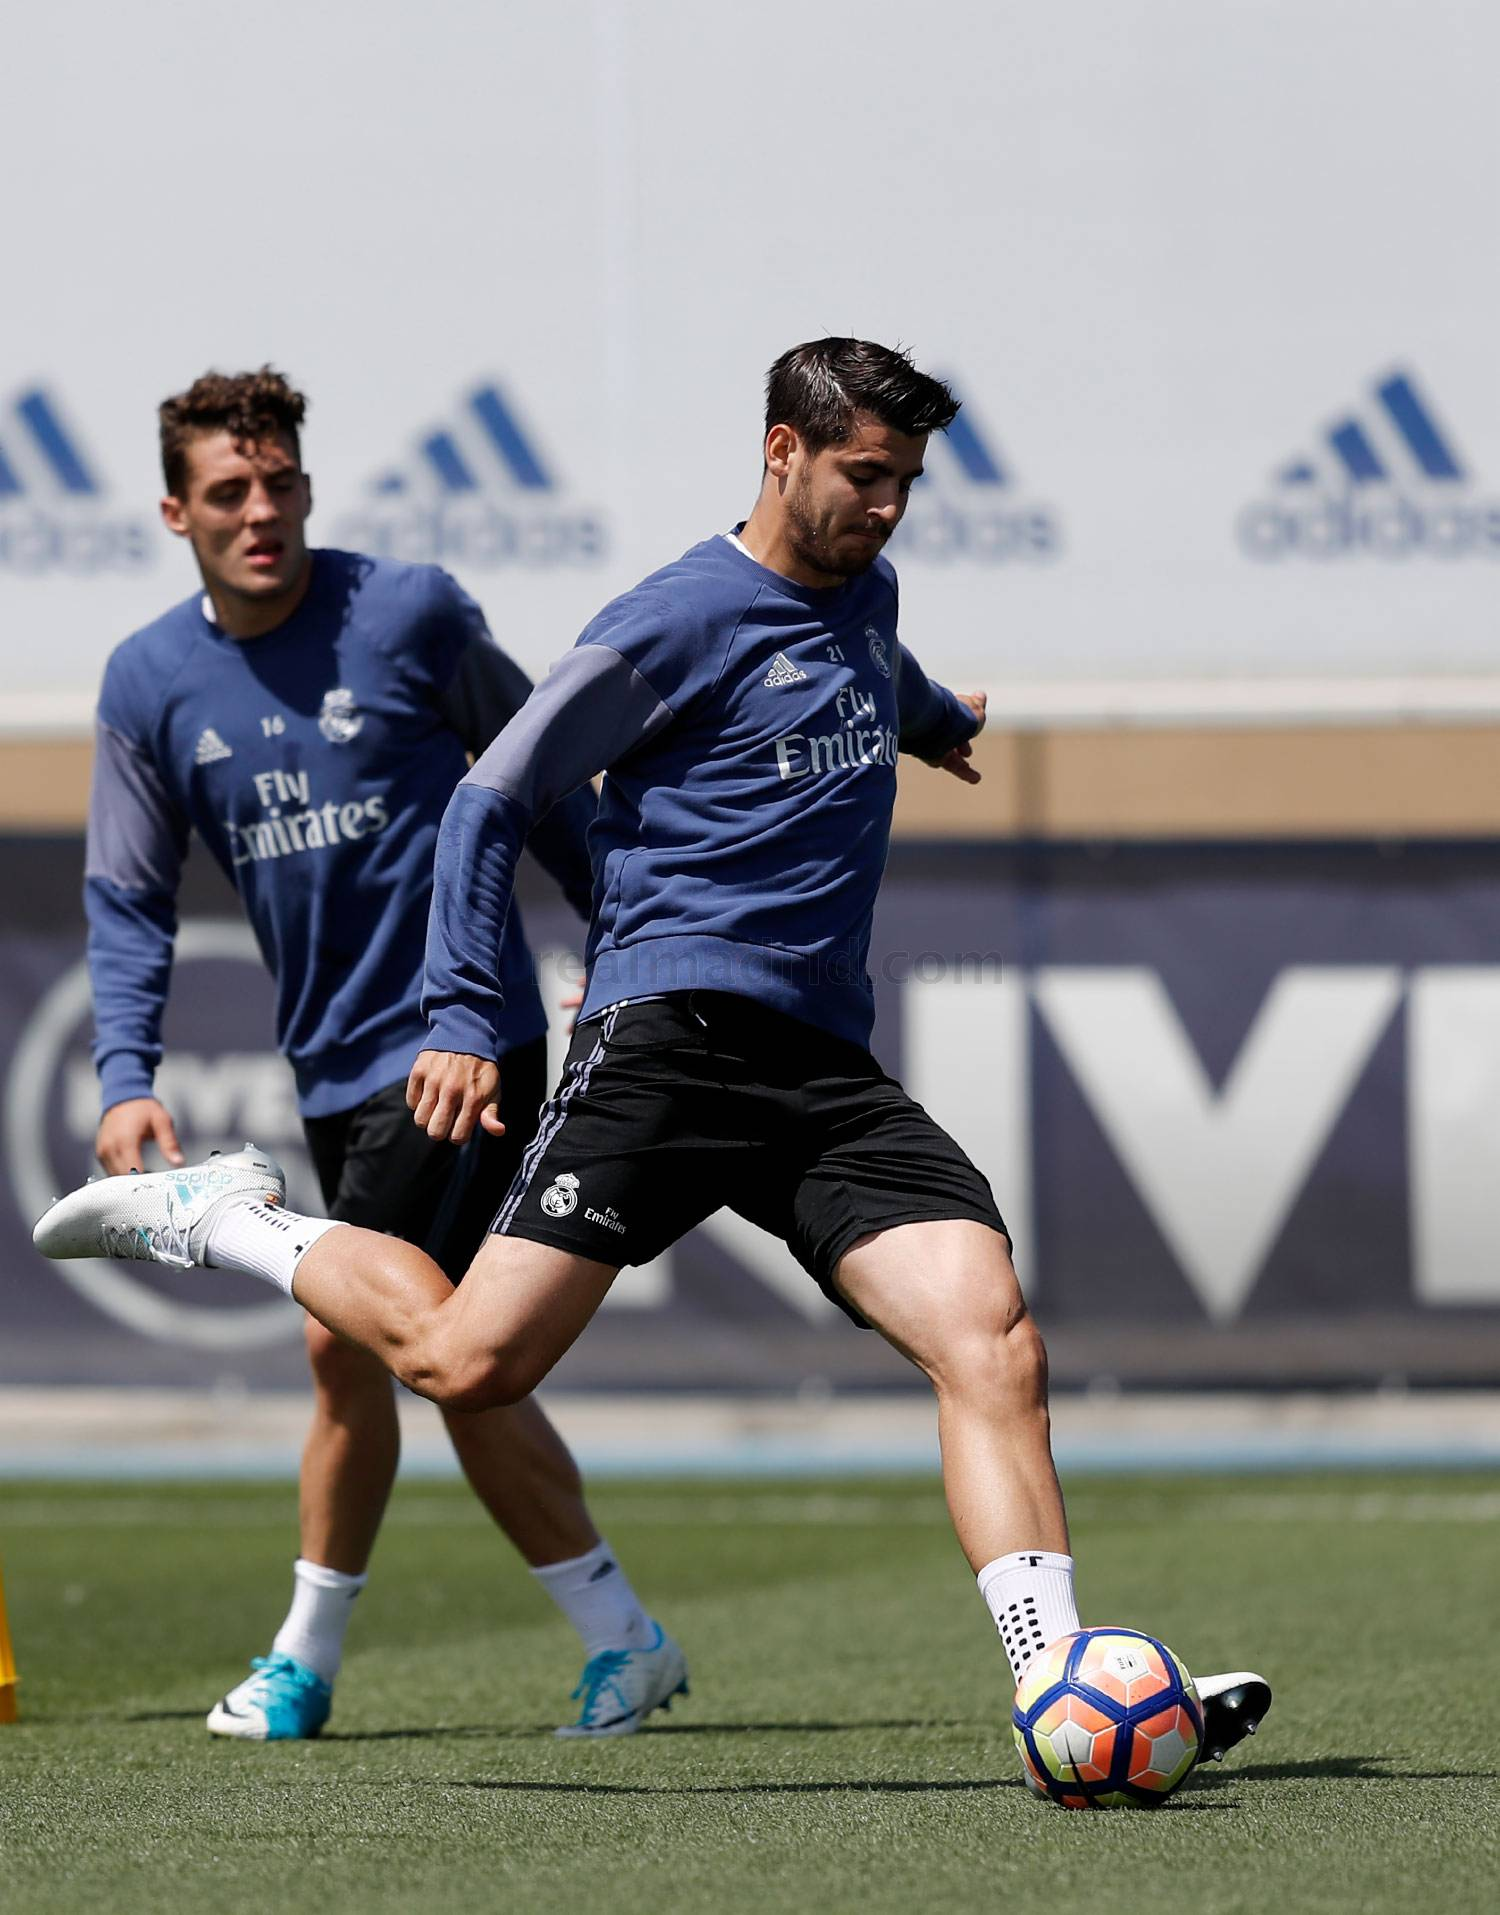 Real Madrid - Entrenamiento del Real Madrid - 18-05-2017